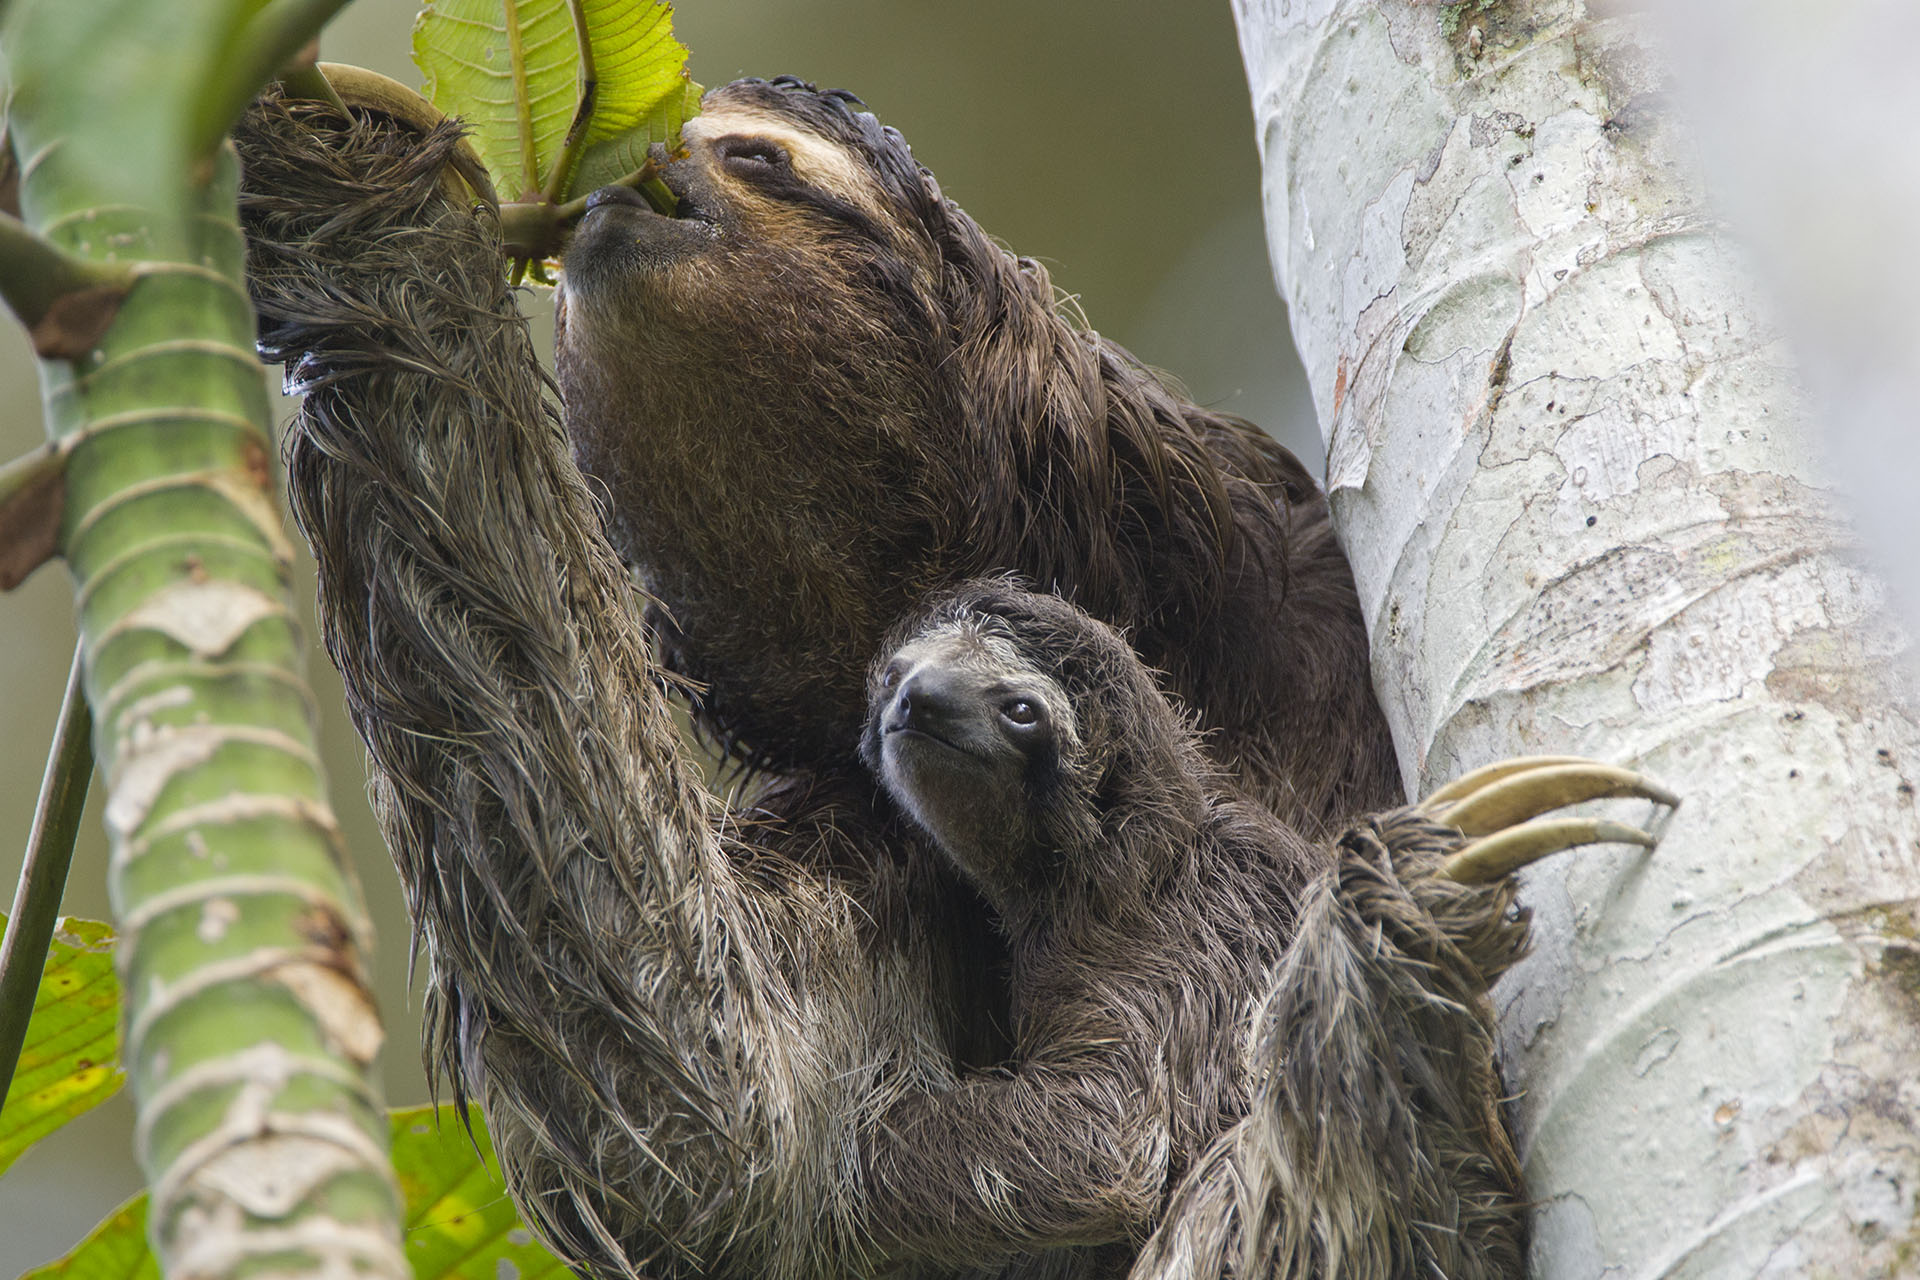 Thinking About Owning a Pet Sloth …Here is Everything You Need to Know